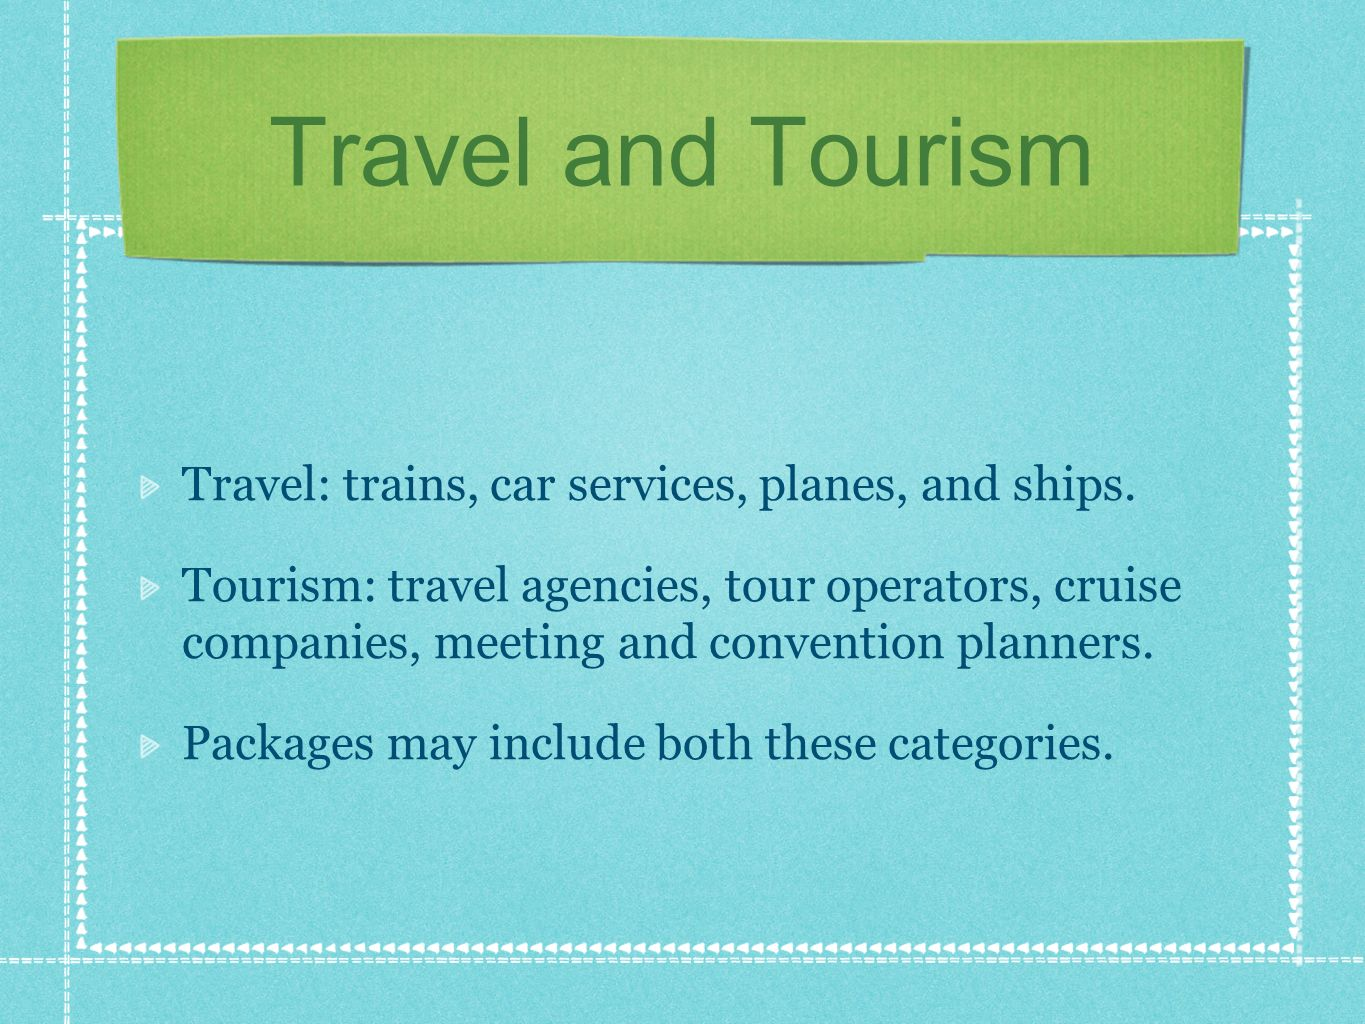 Travel and Tourism Travel: trains, car services, planes, and ships.